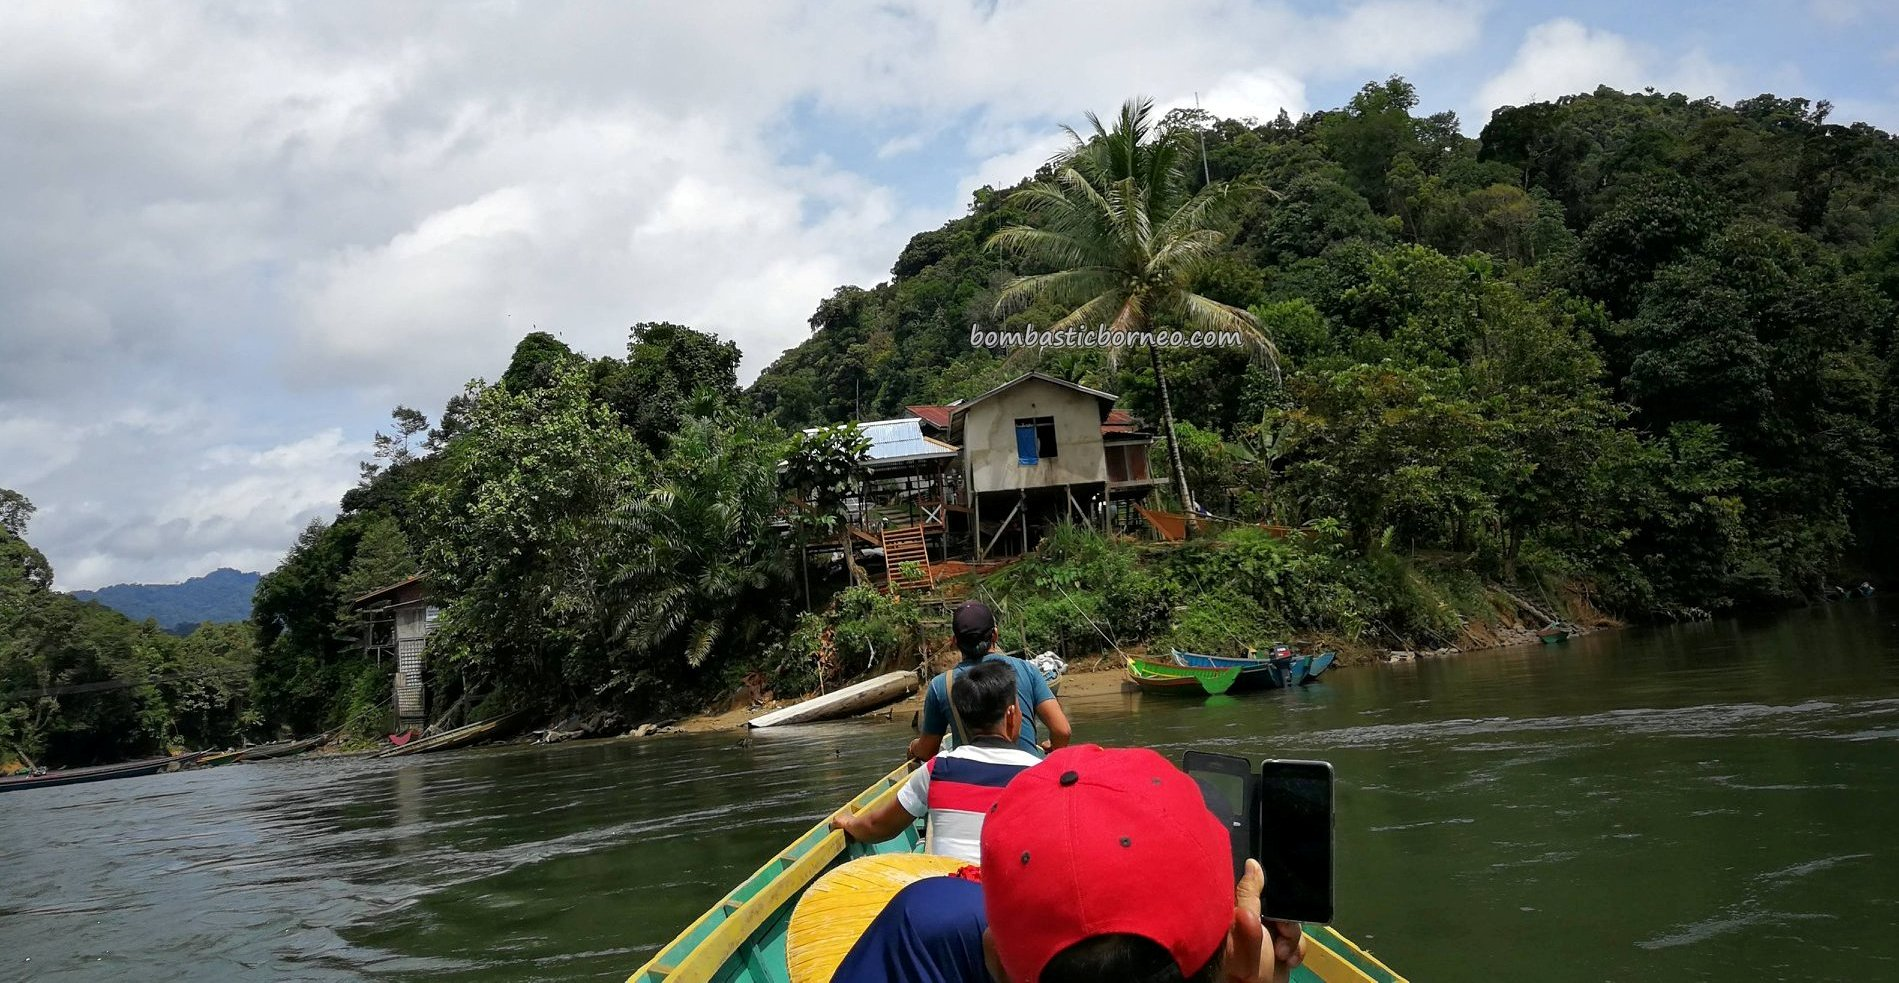 Boat ride, adventure, traditional, village, destination, Desa Bungan Jaya, Putussibau Selatan, river, indigenous, native, tourism, tourist attraction, travel guide, Transborneo, 婆羅洲, 普南族部落